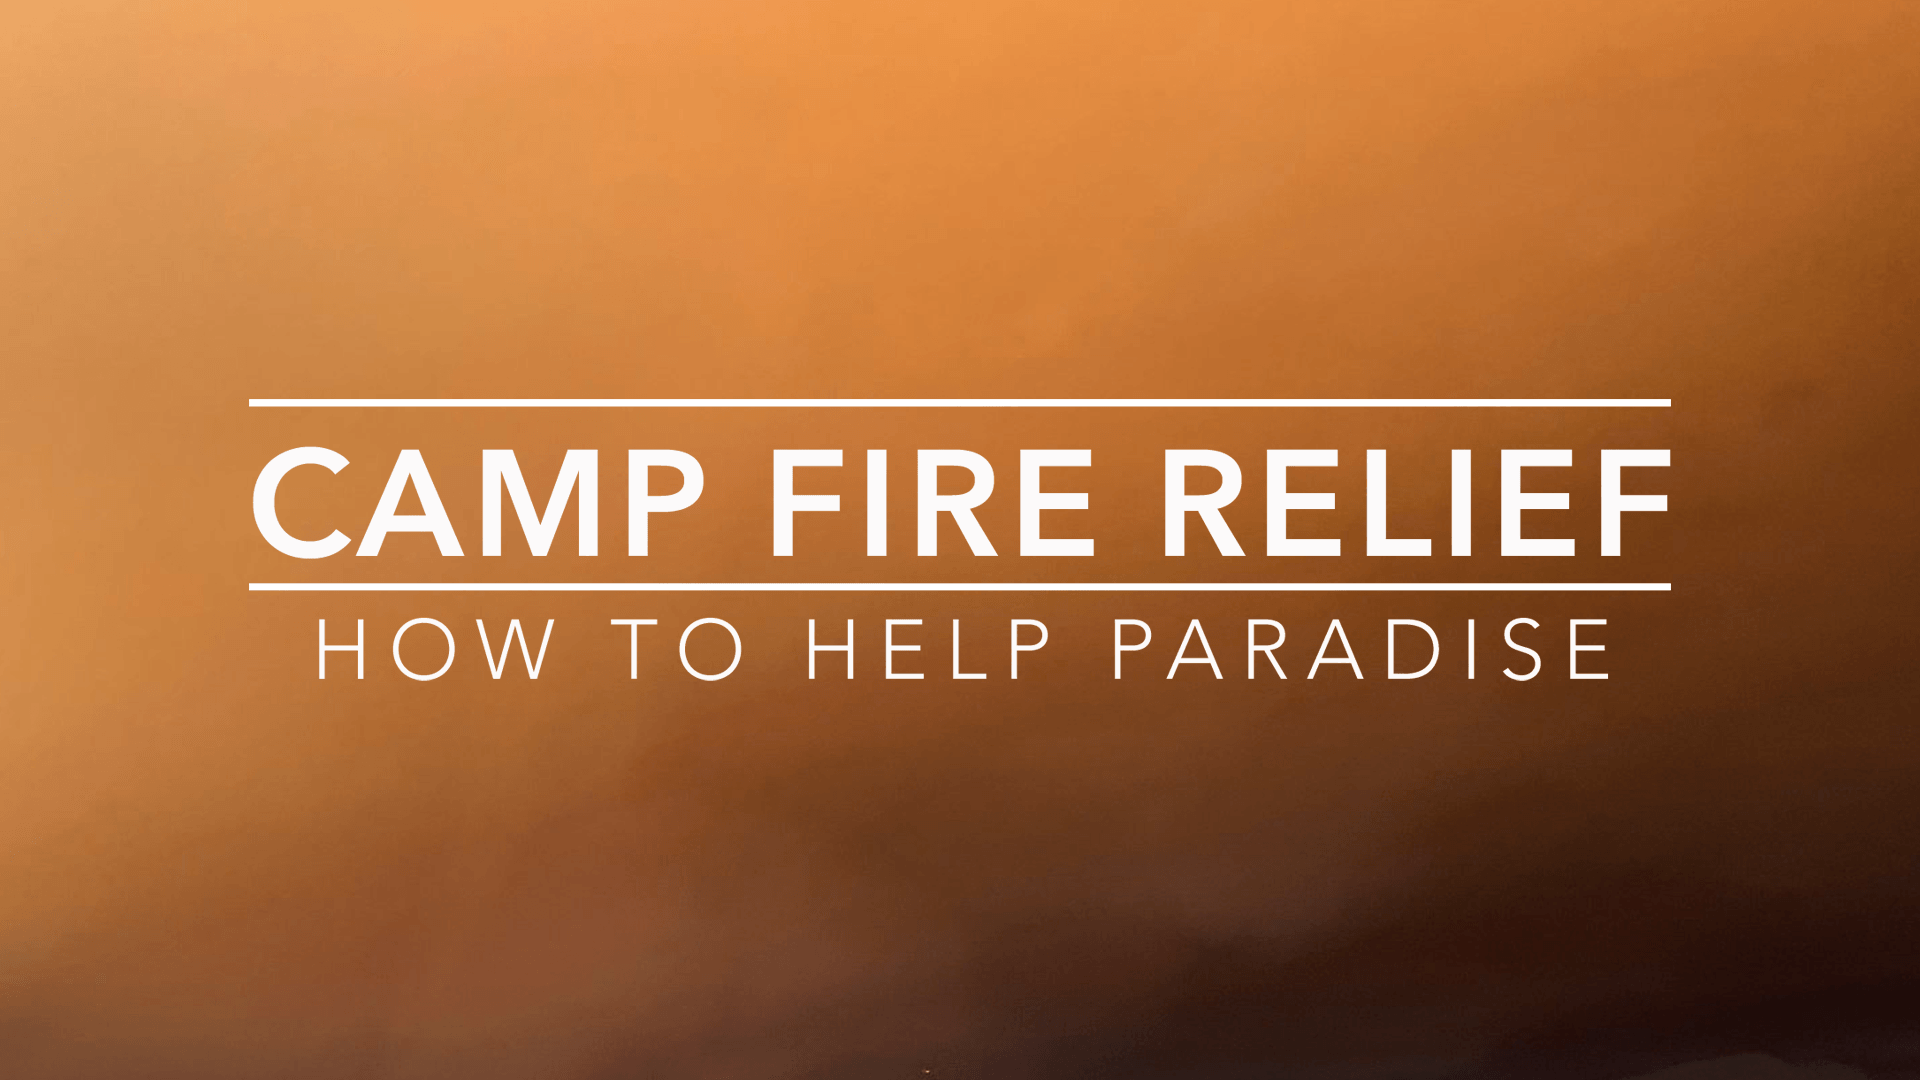 Camp Fire Relief